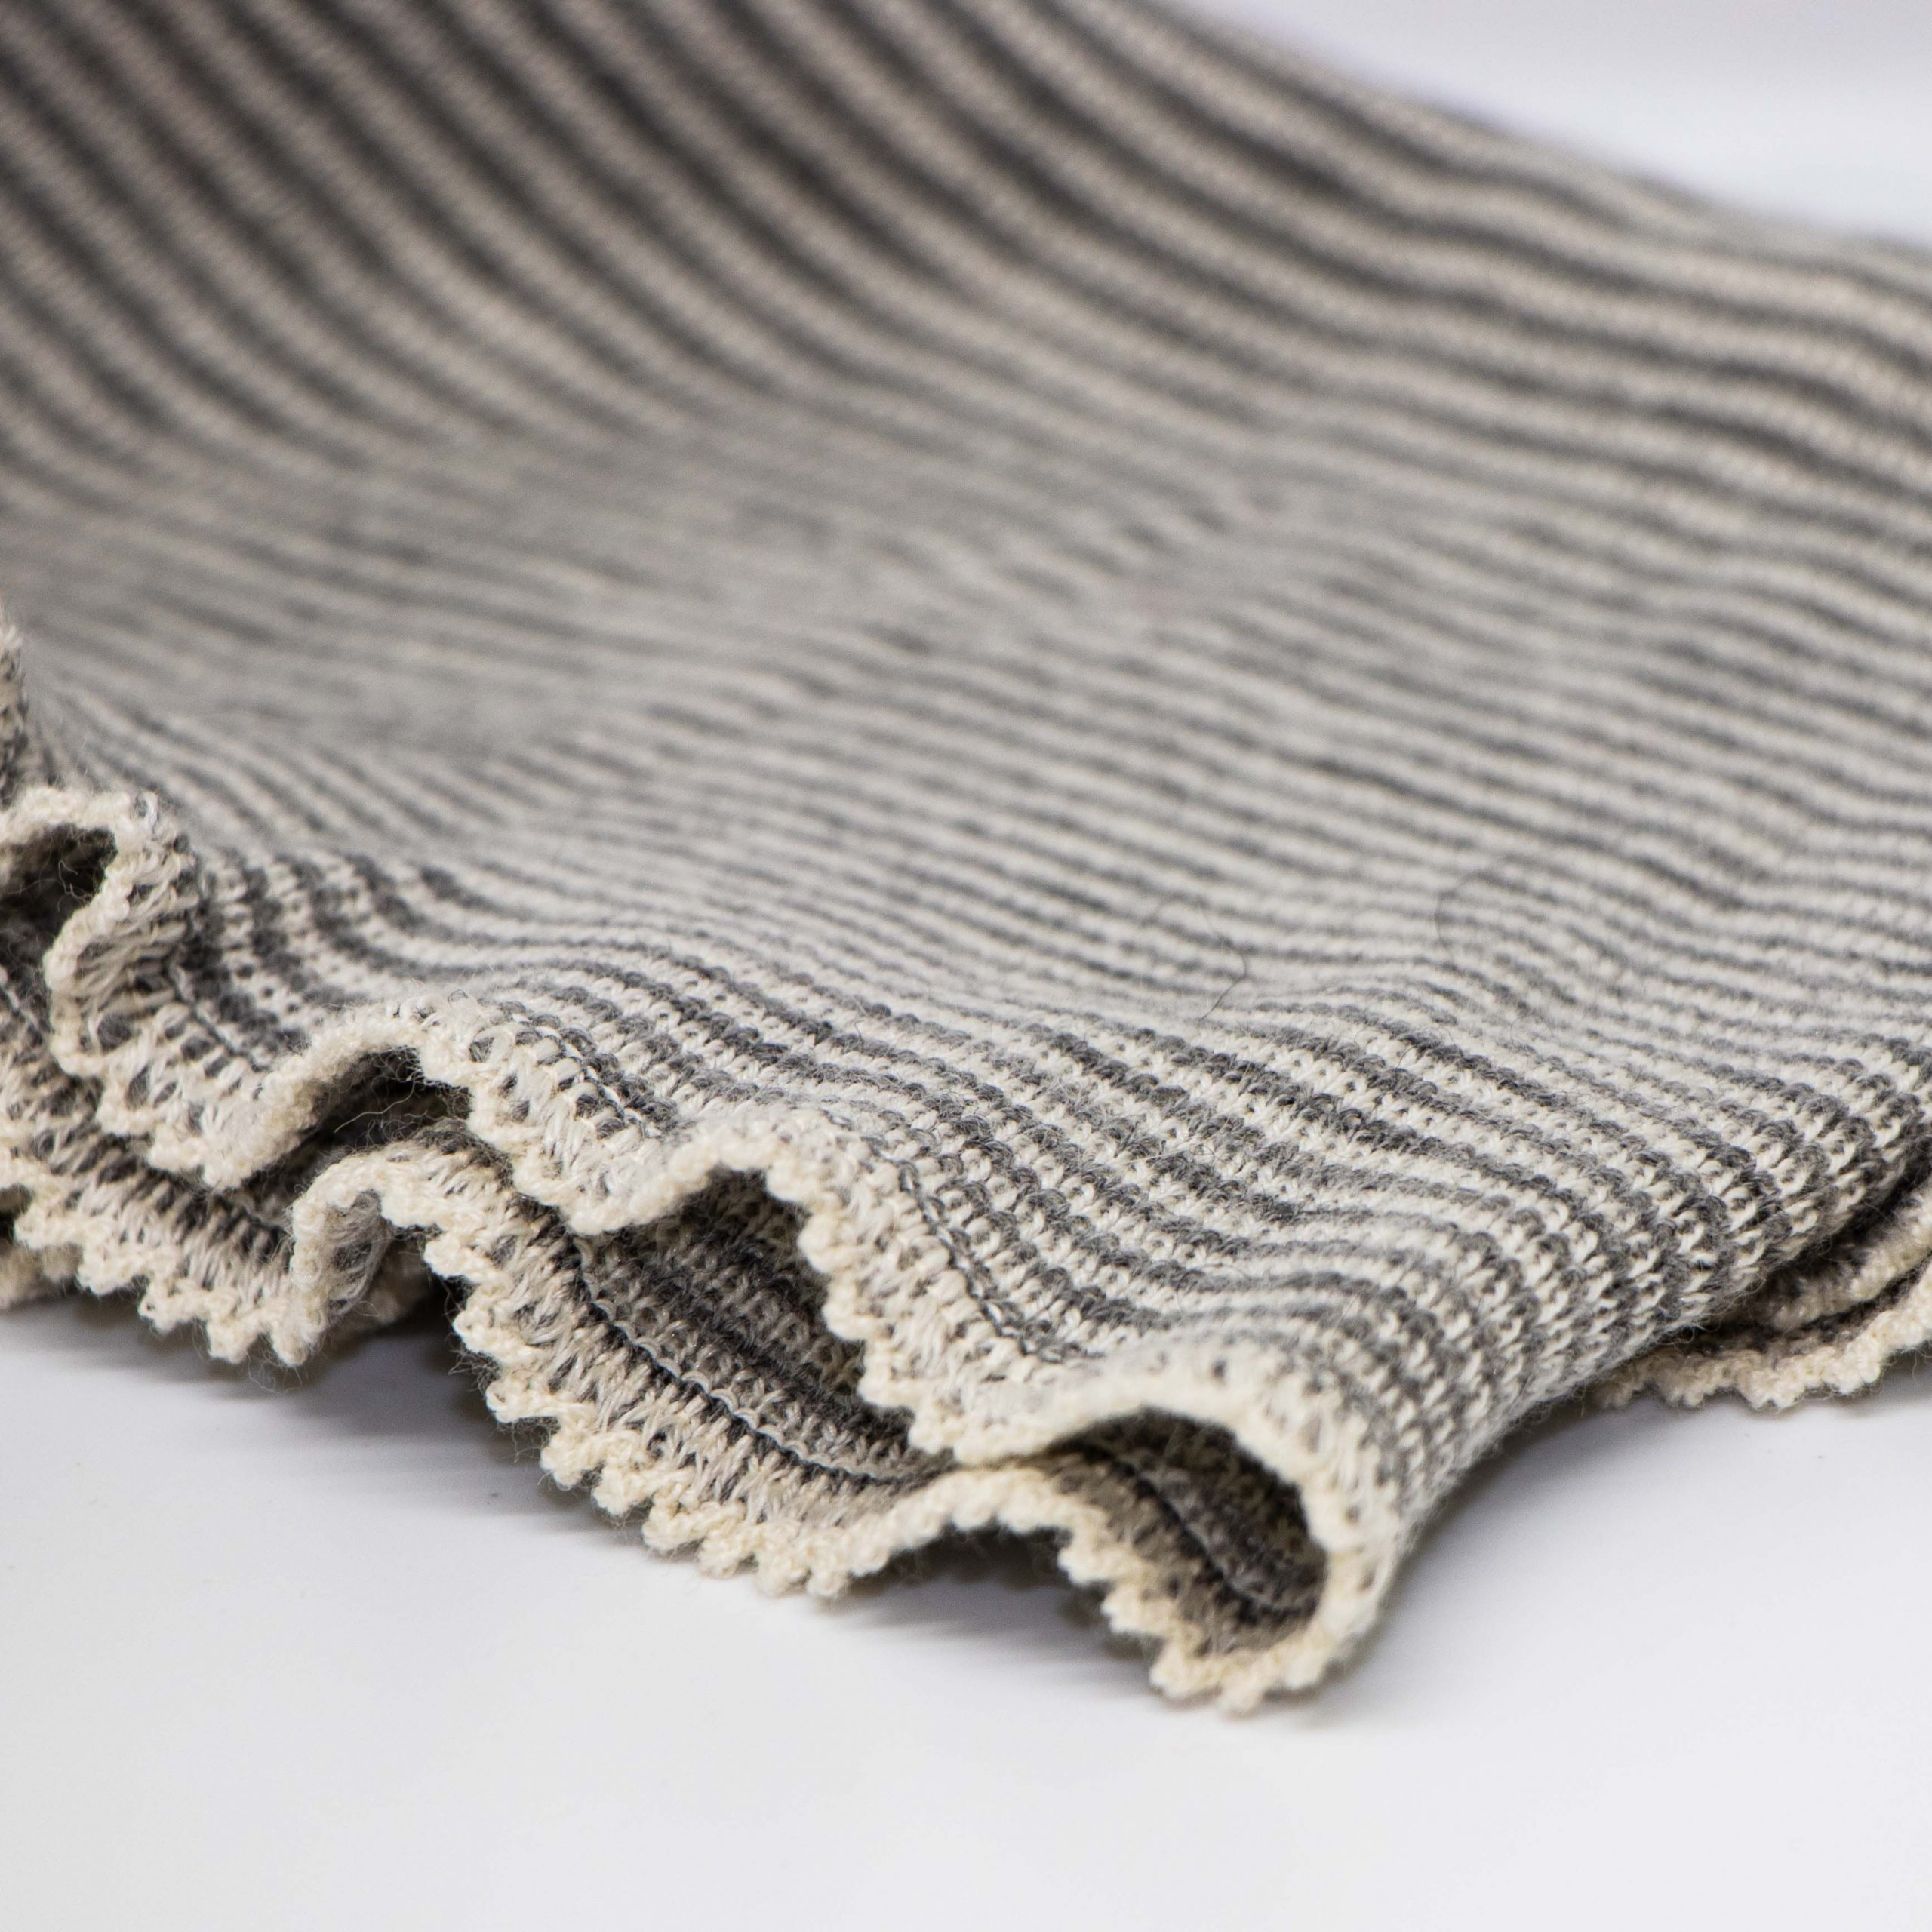 white and grey striped wool baby blanket